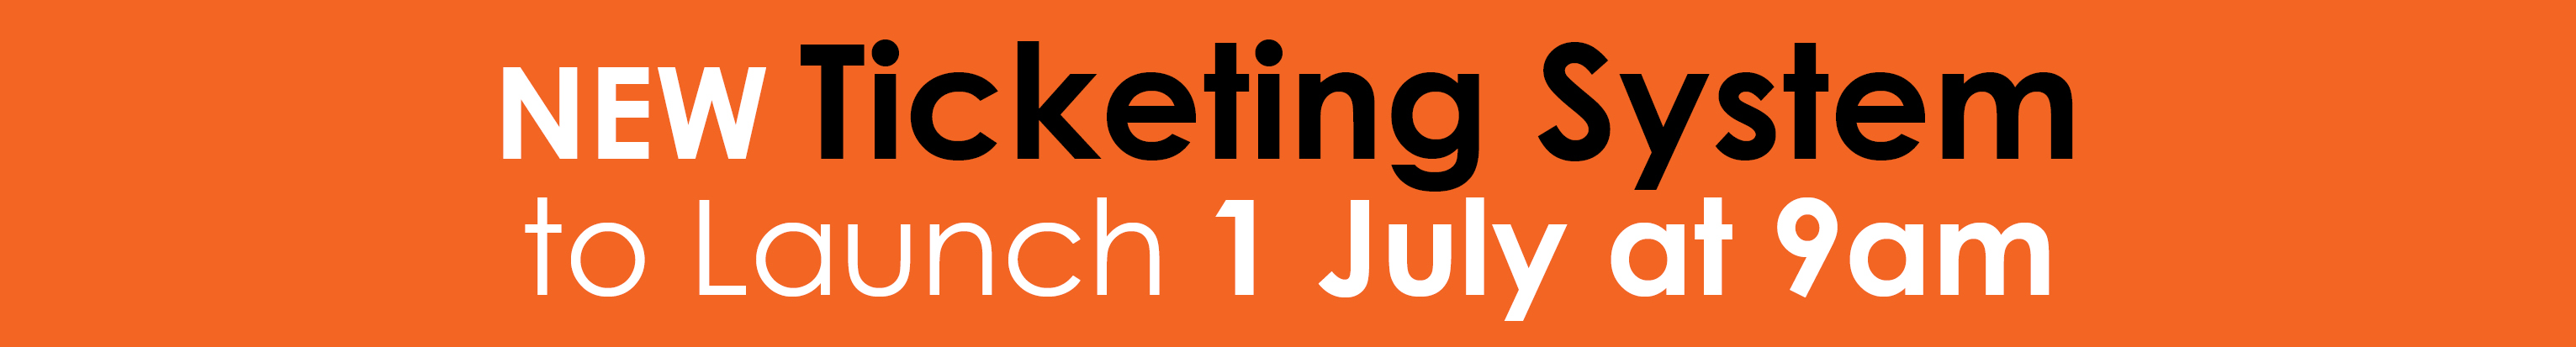 New Ticketing System launching 1 July at 9am